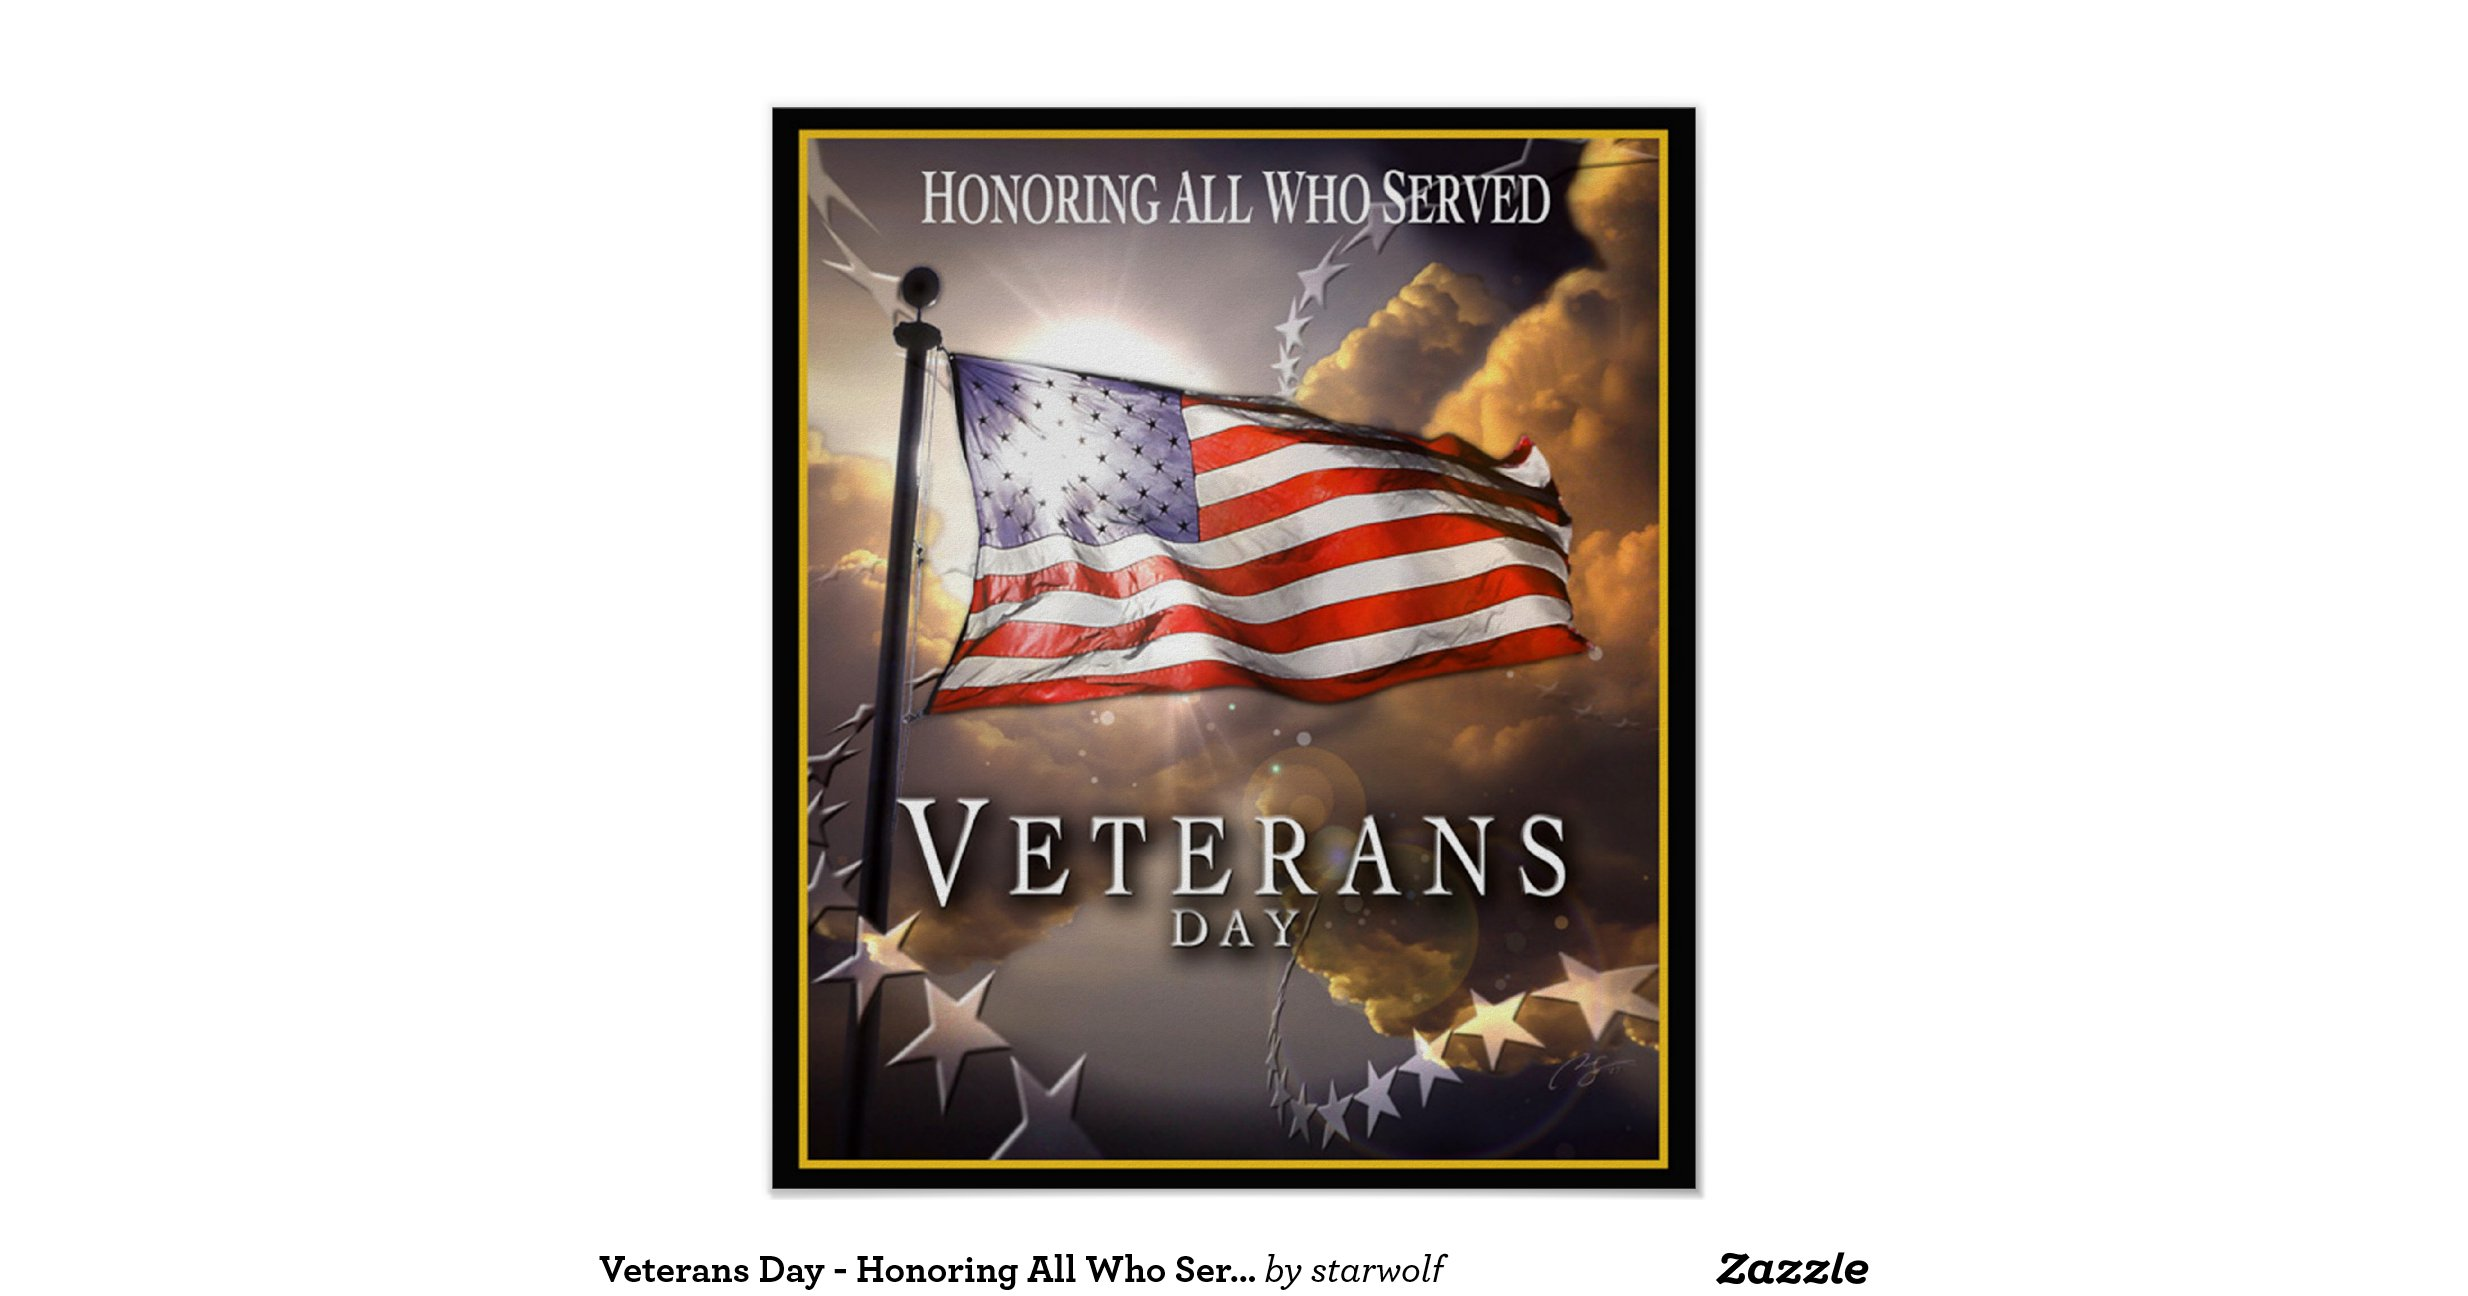 veterans day honoring all who served poster